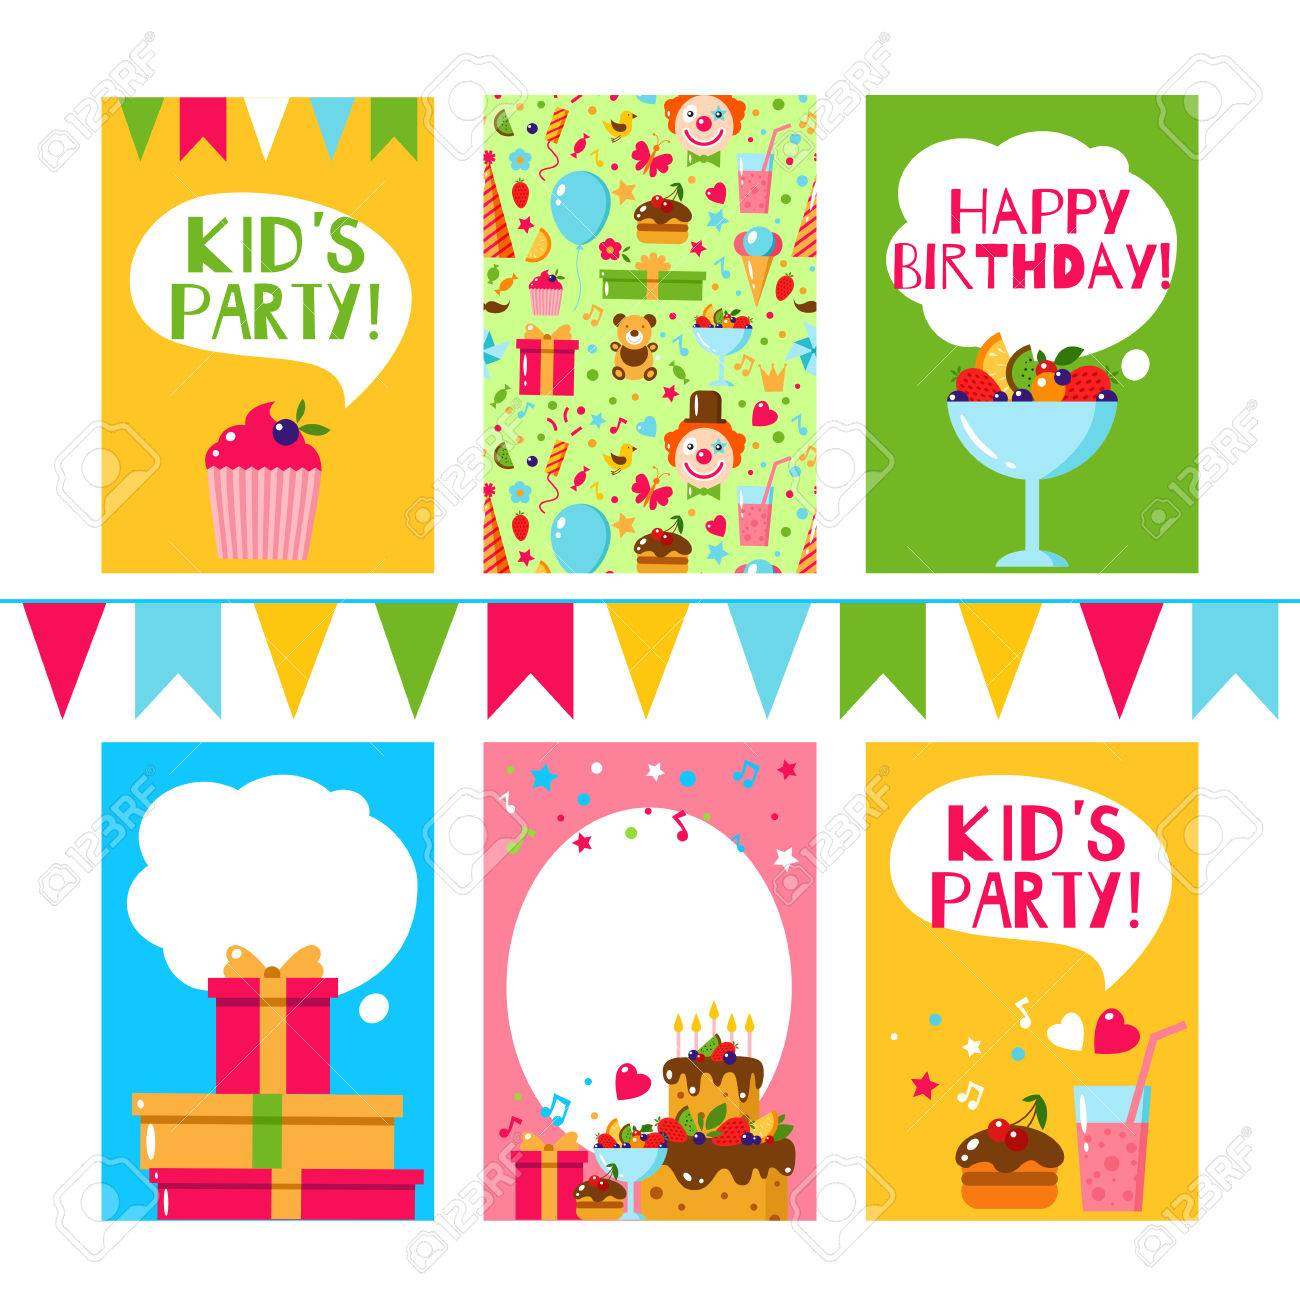 Happy Birthday Invitation Card Flat Vector Kids Invitation